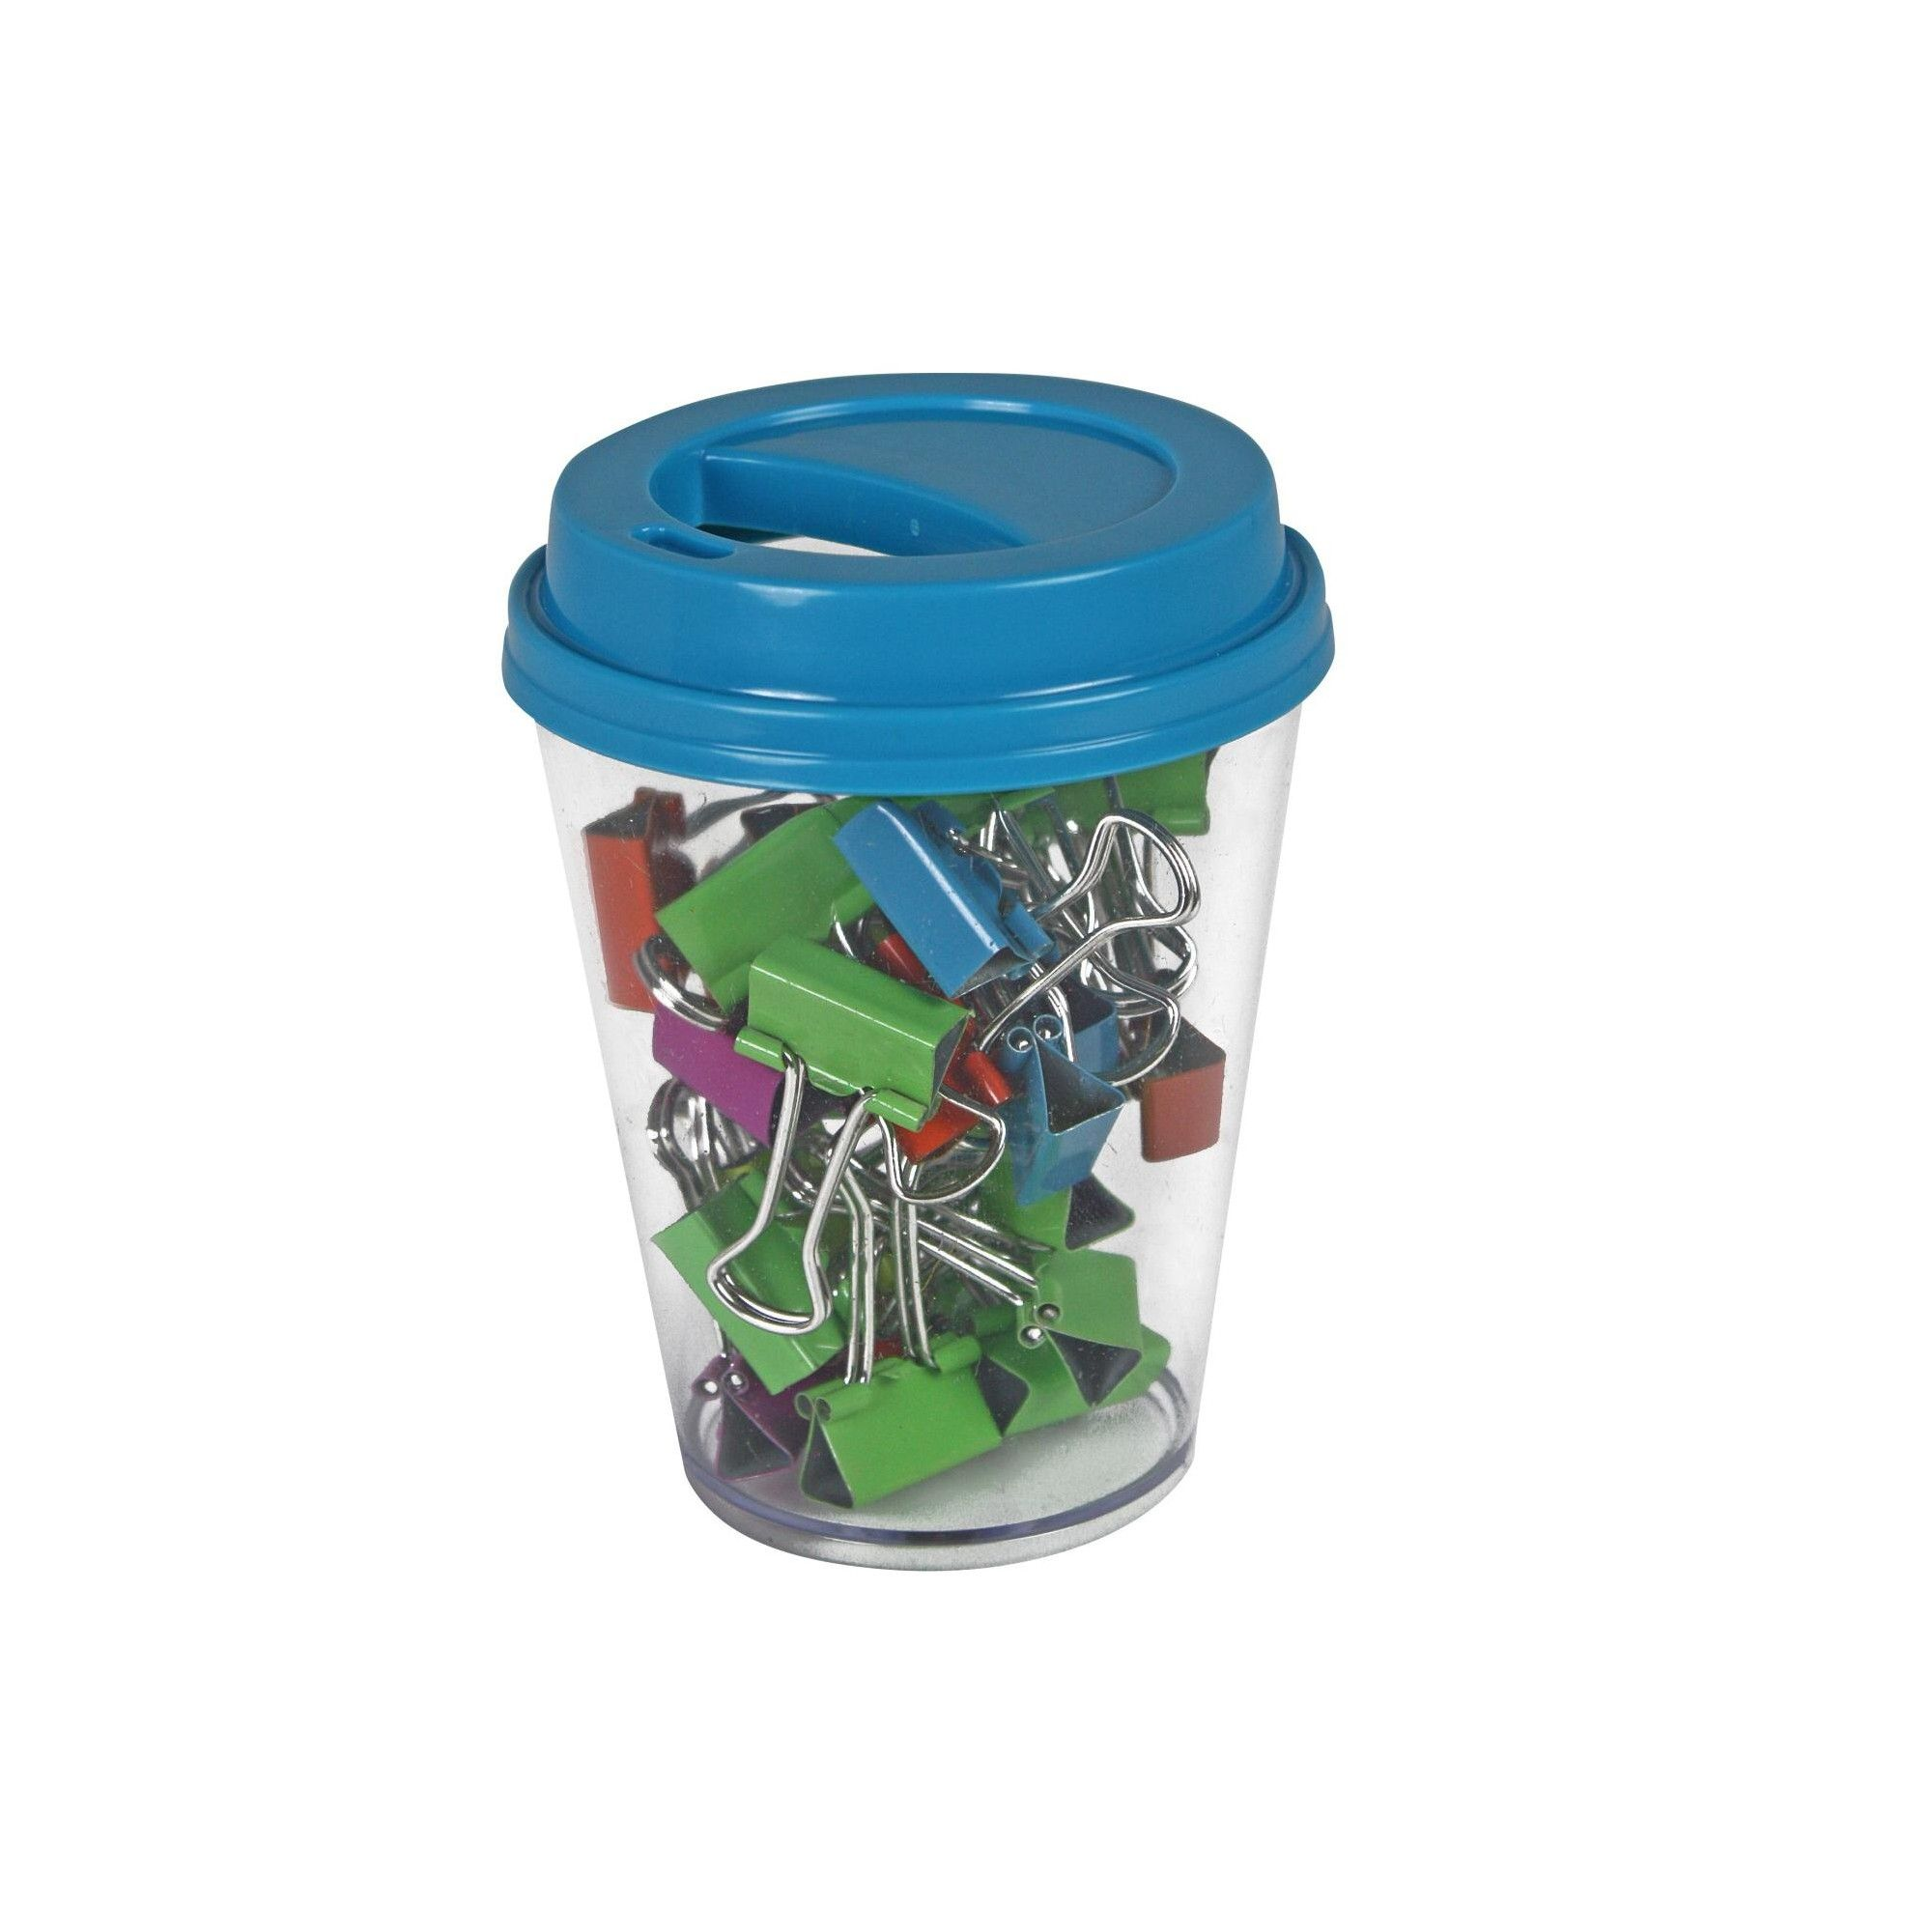 The Pencil Grip Binder Clip In Coffee Cup Supply Storage